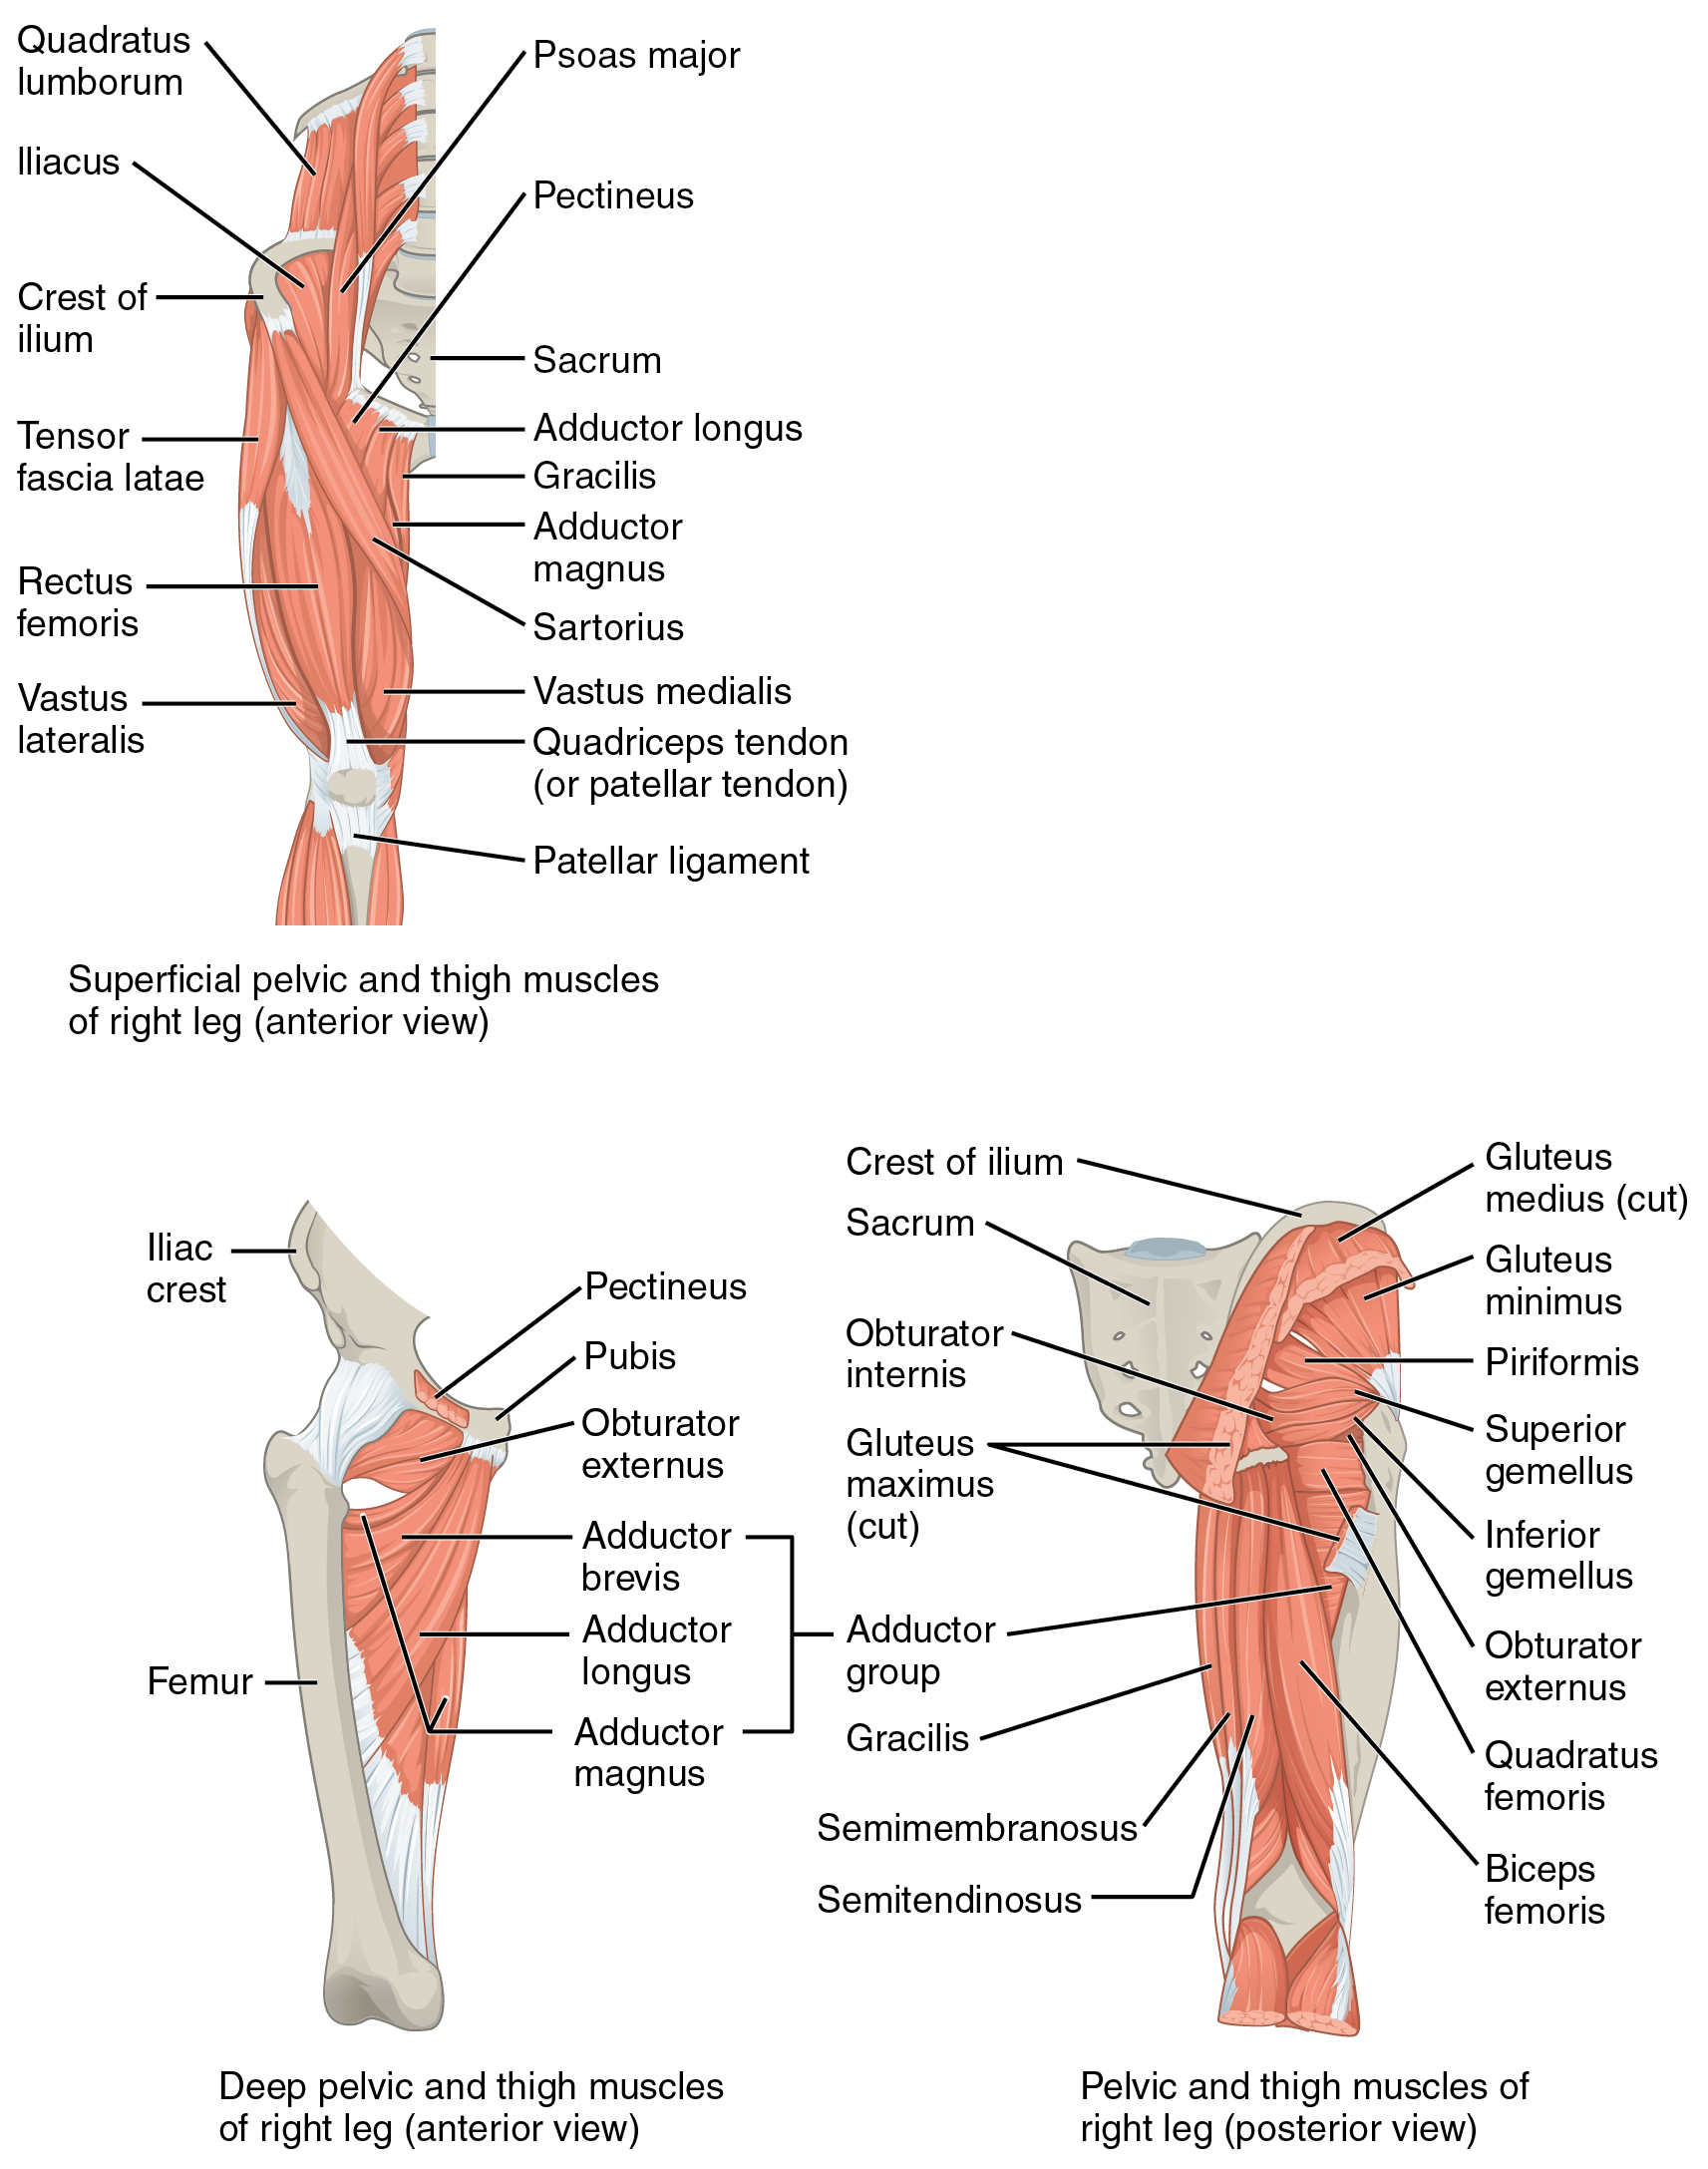 11 6 Appendicular Muscles Of The Pelvic Girdle And Lower Limbs Anatomy And Physiology